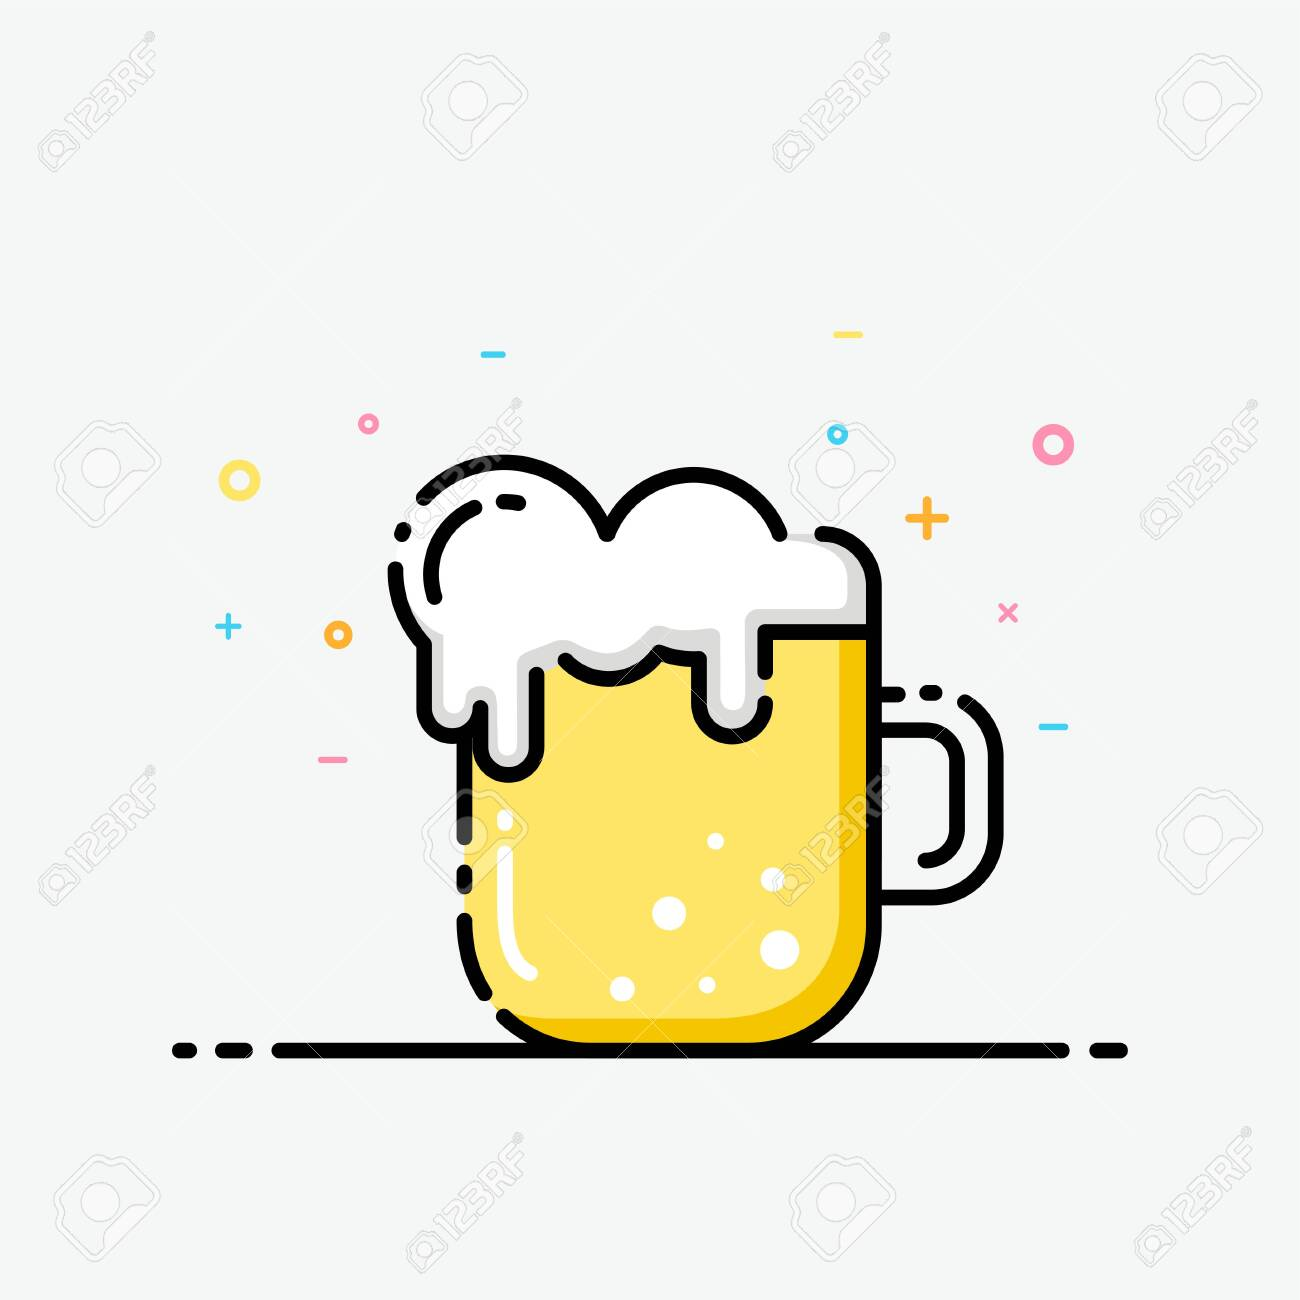 Beer Icon In Flat Line Style Beer Mug Logo For Social Media Royalty Free Cliparts Vectors And Stock Illustration Image 120856888